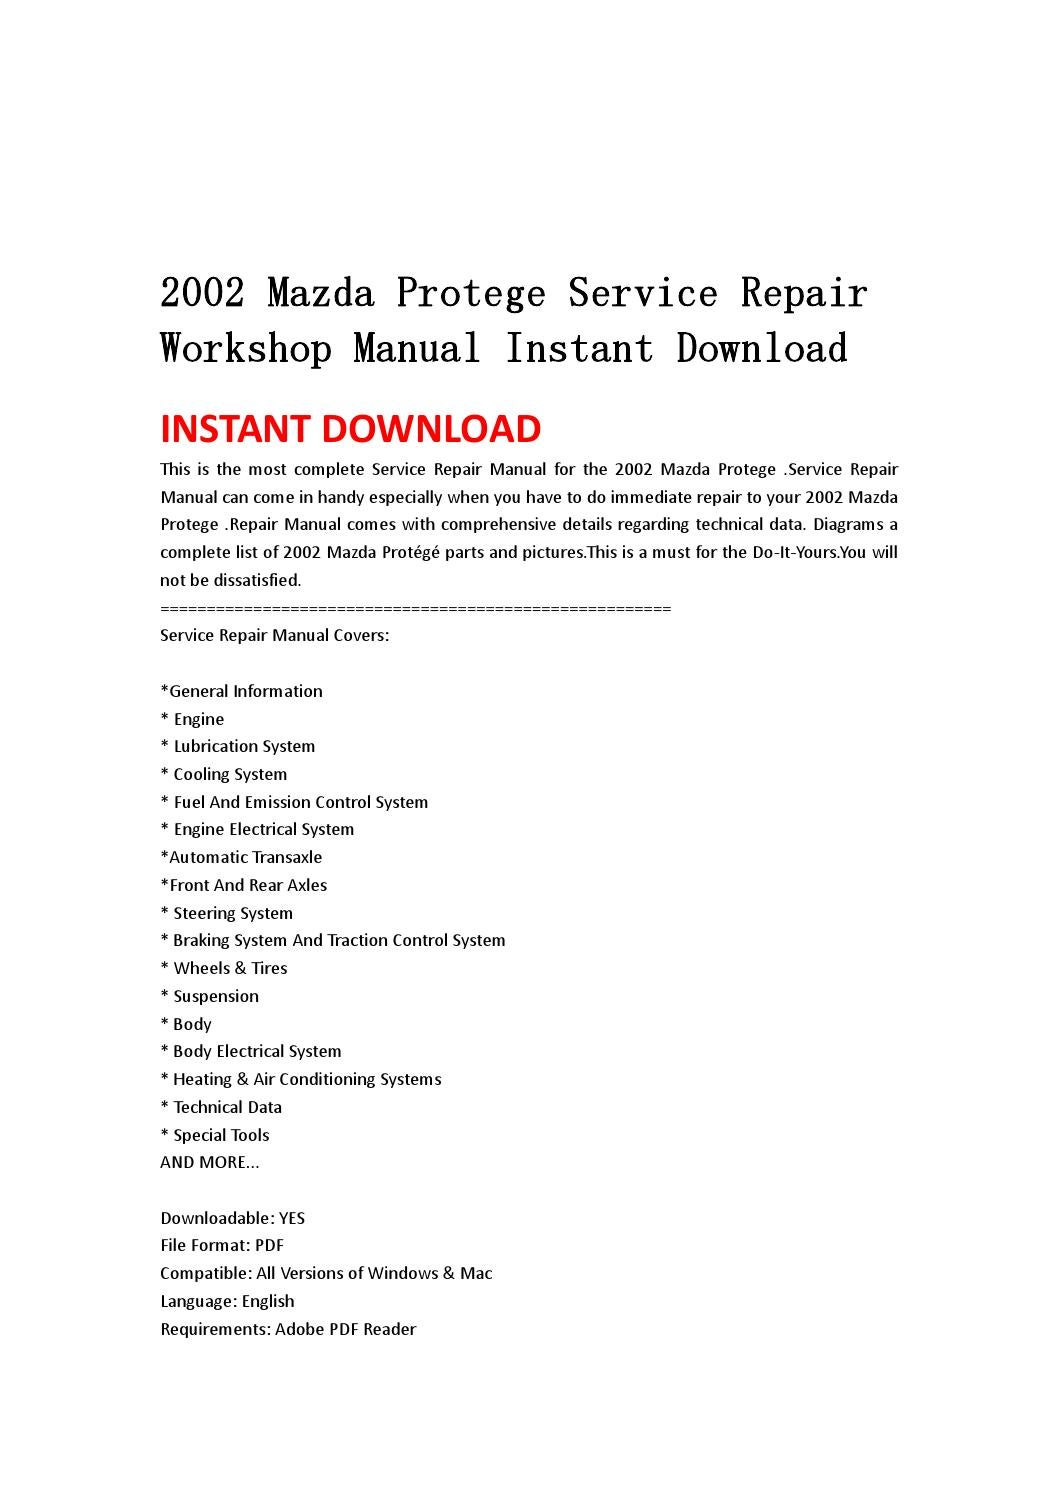 2002 Mazda Protege Service Repair Workshop Manual Instant Download Engine Parts Diagram By Hsgfbenn Issuu